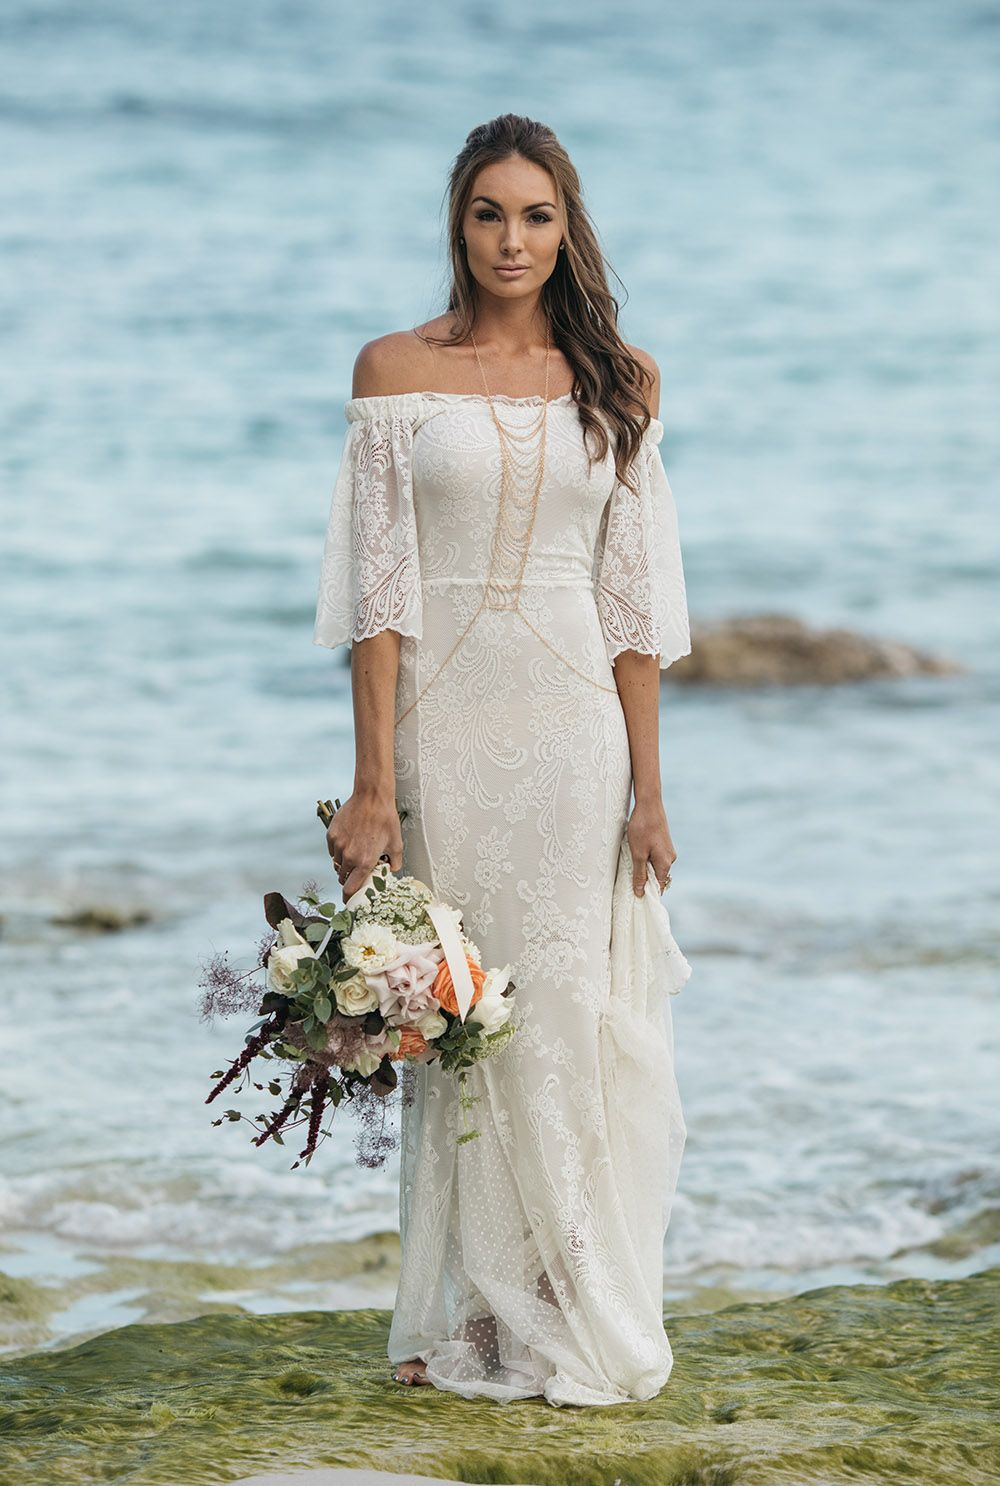 Top Beach Wedding Dress Ideas | Wedding Dresses | Pinterest | Beach ...